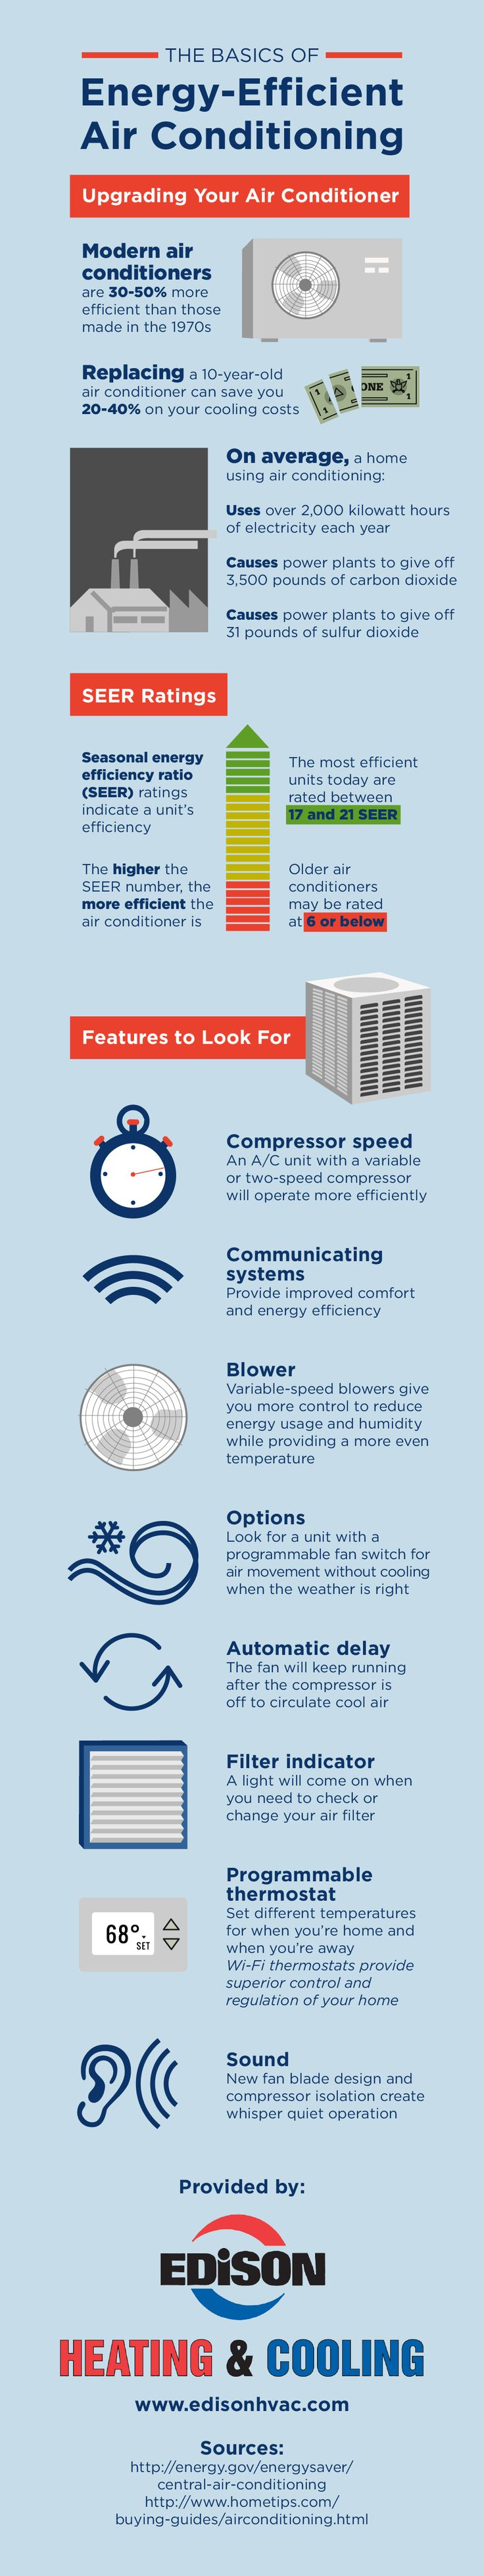 Look for an air conditioner's SEER rating before making a purchase so that you can get some idea of how efficient it will be. Look through this infographic for more on the basics of energy-efficient air conditioning!